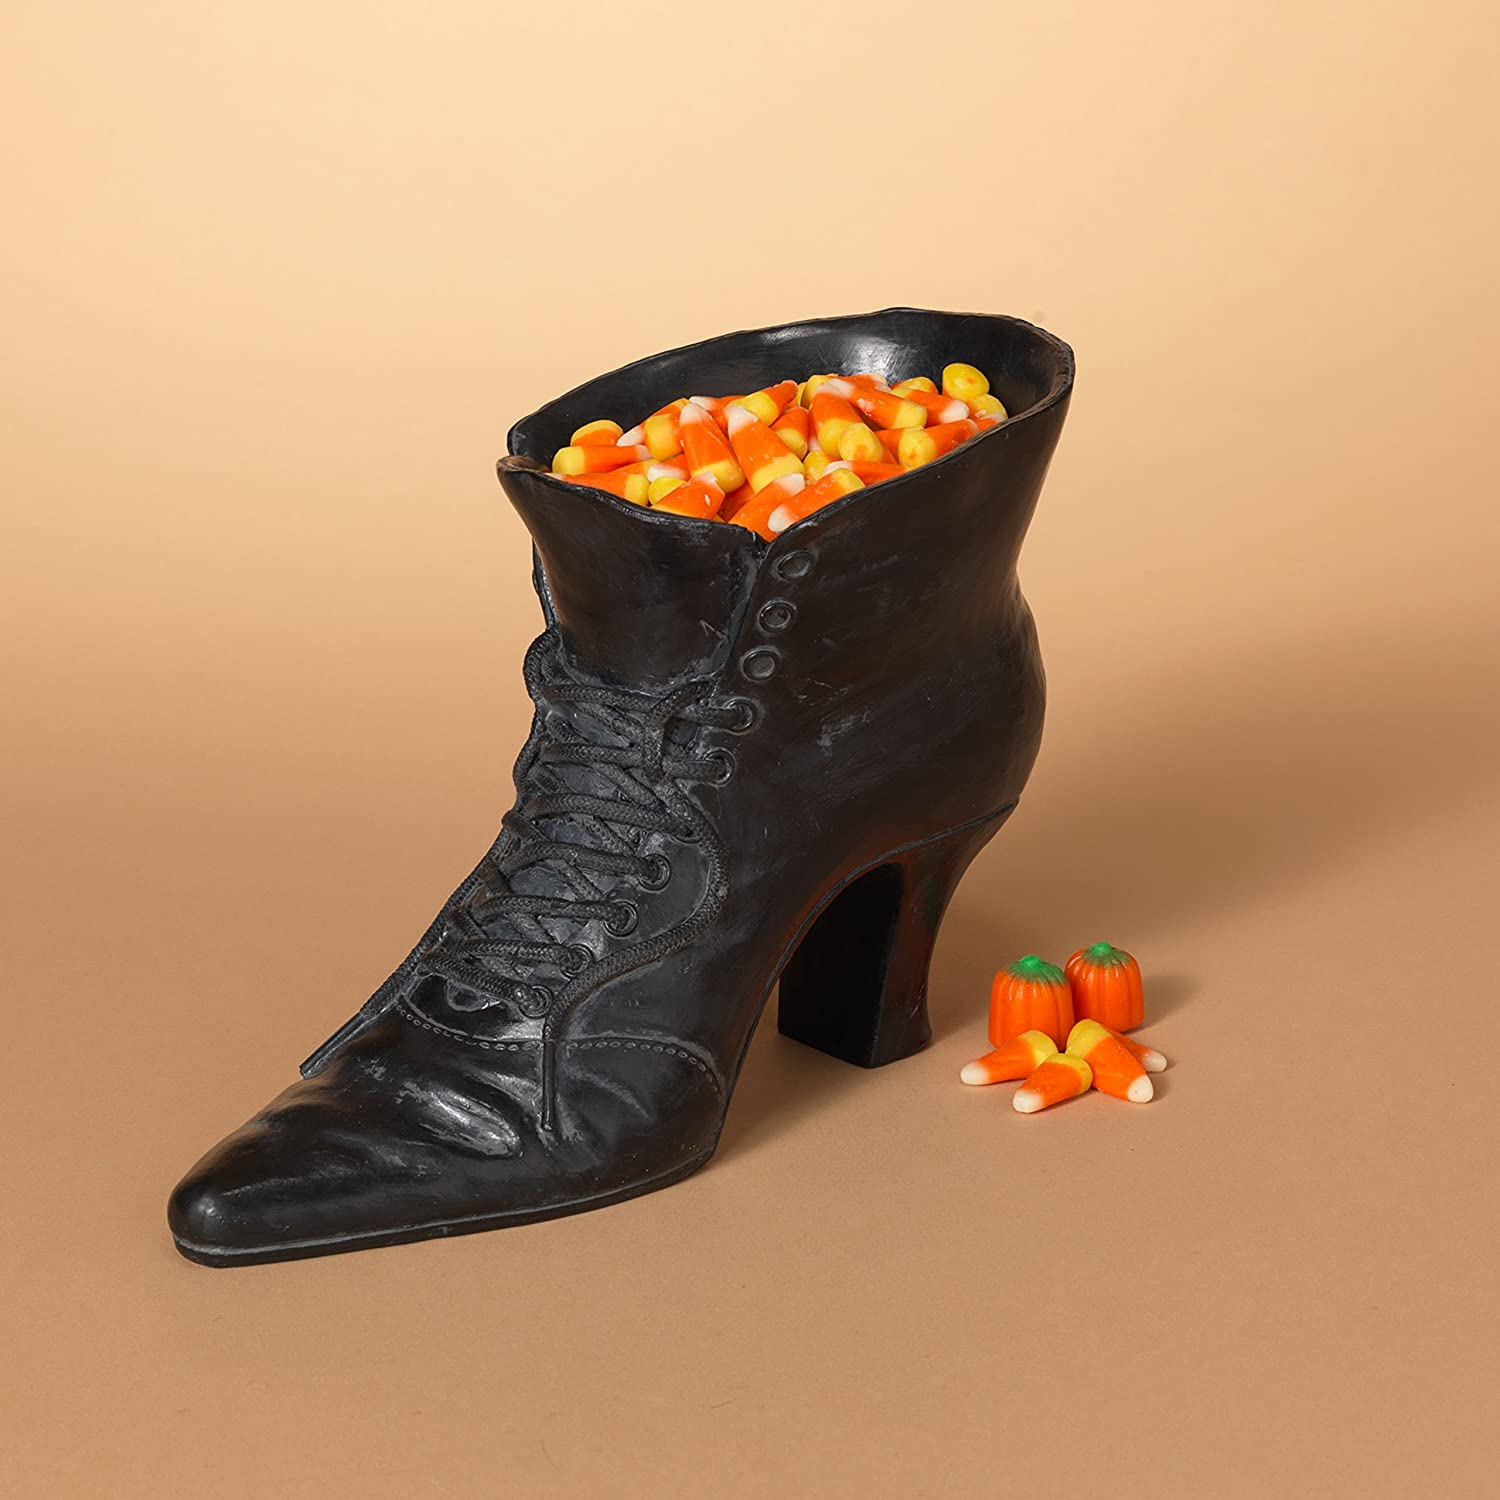 One Holiday Lane Vintage Retro Witch Boot Halloween Candy Bowl - Witch Shoe Candy Dish